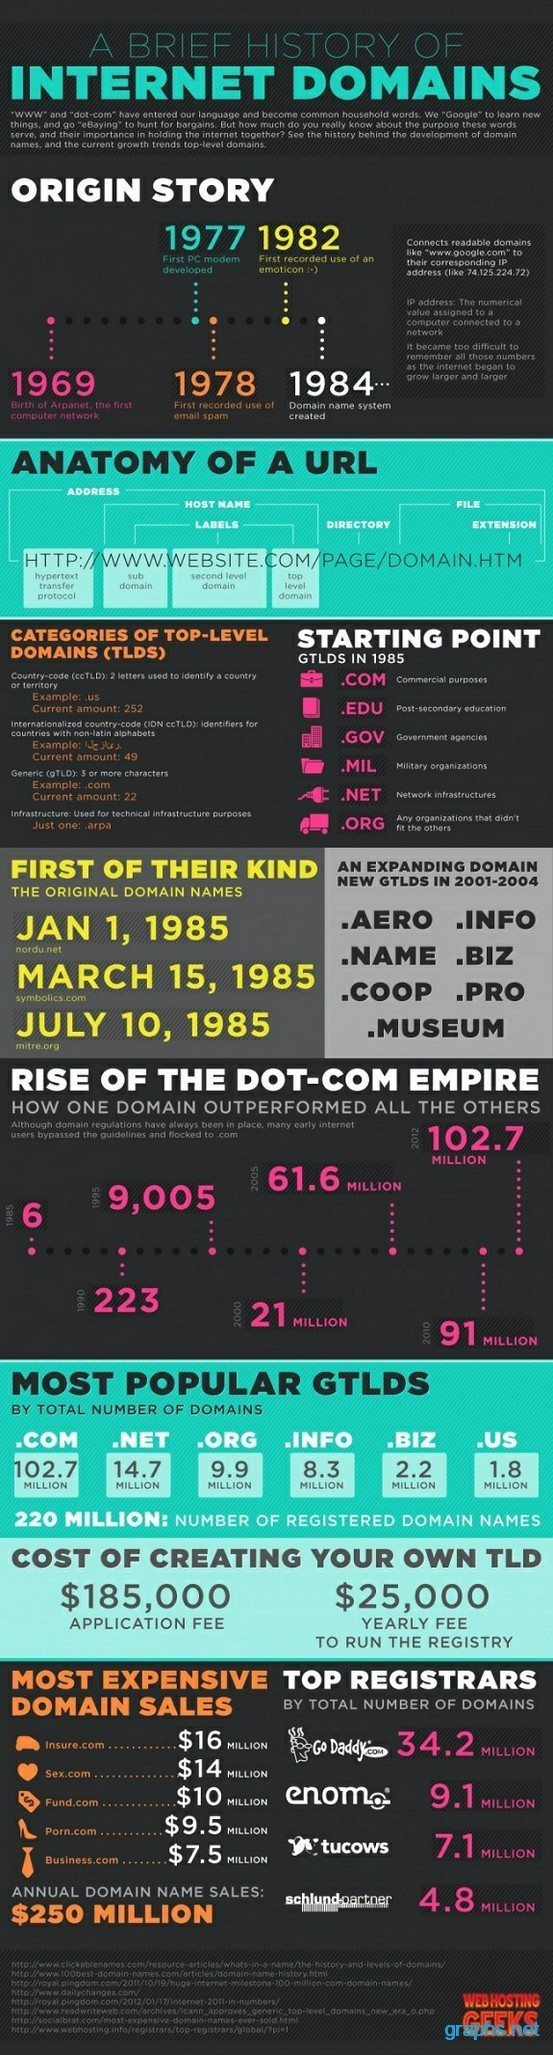 Growth of Internet Domains